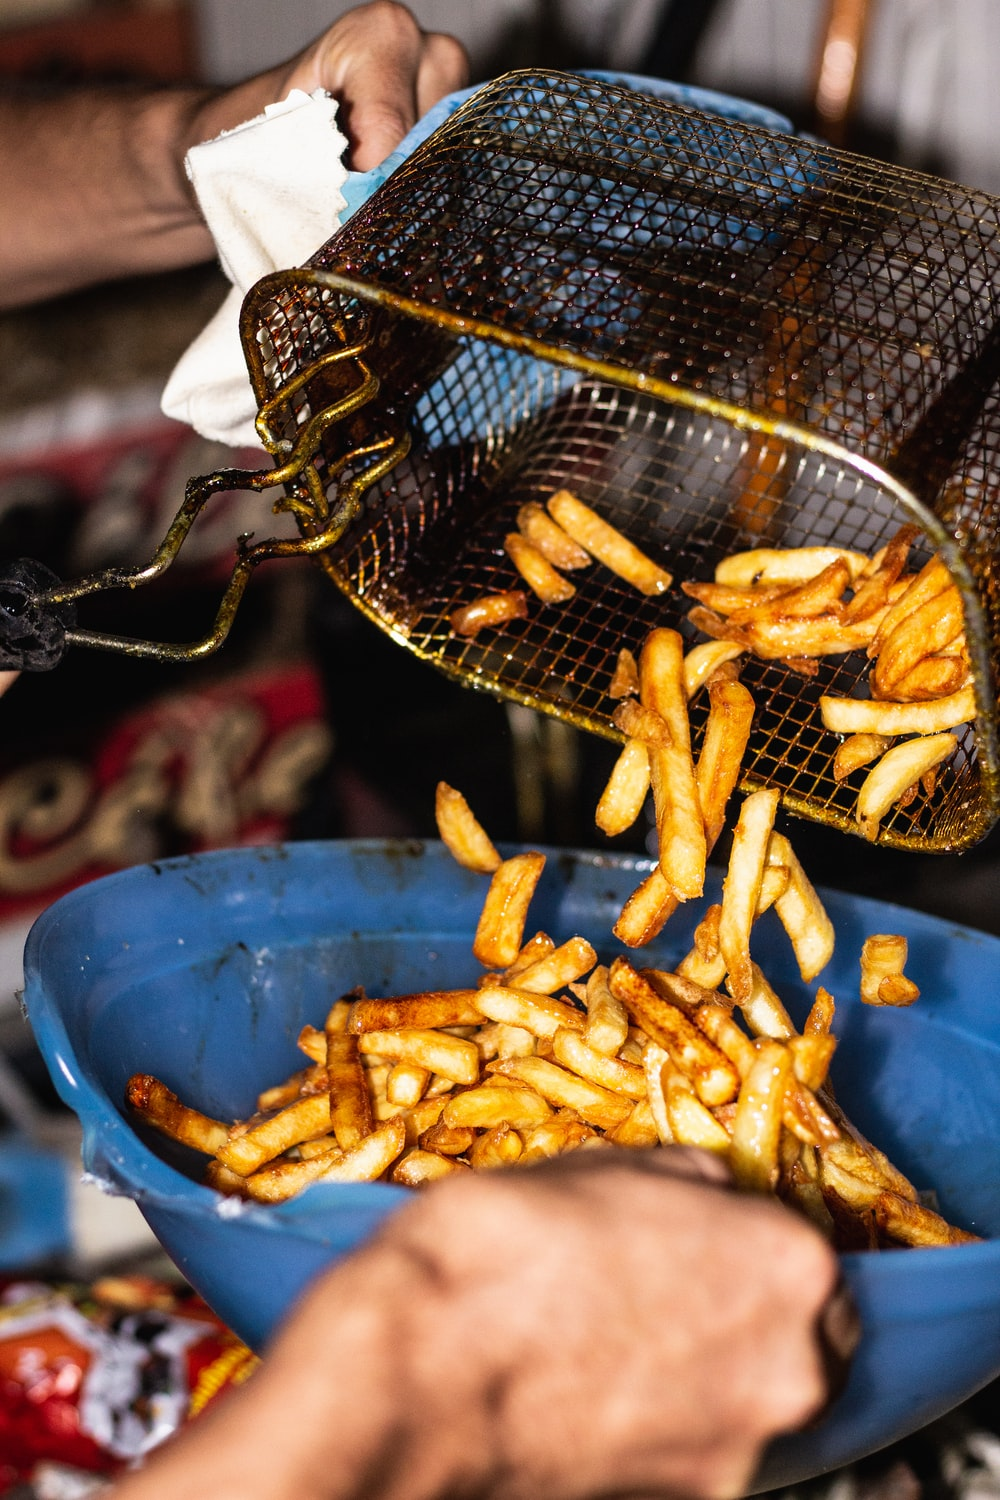 person transferring fries from basket to a bowl